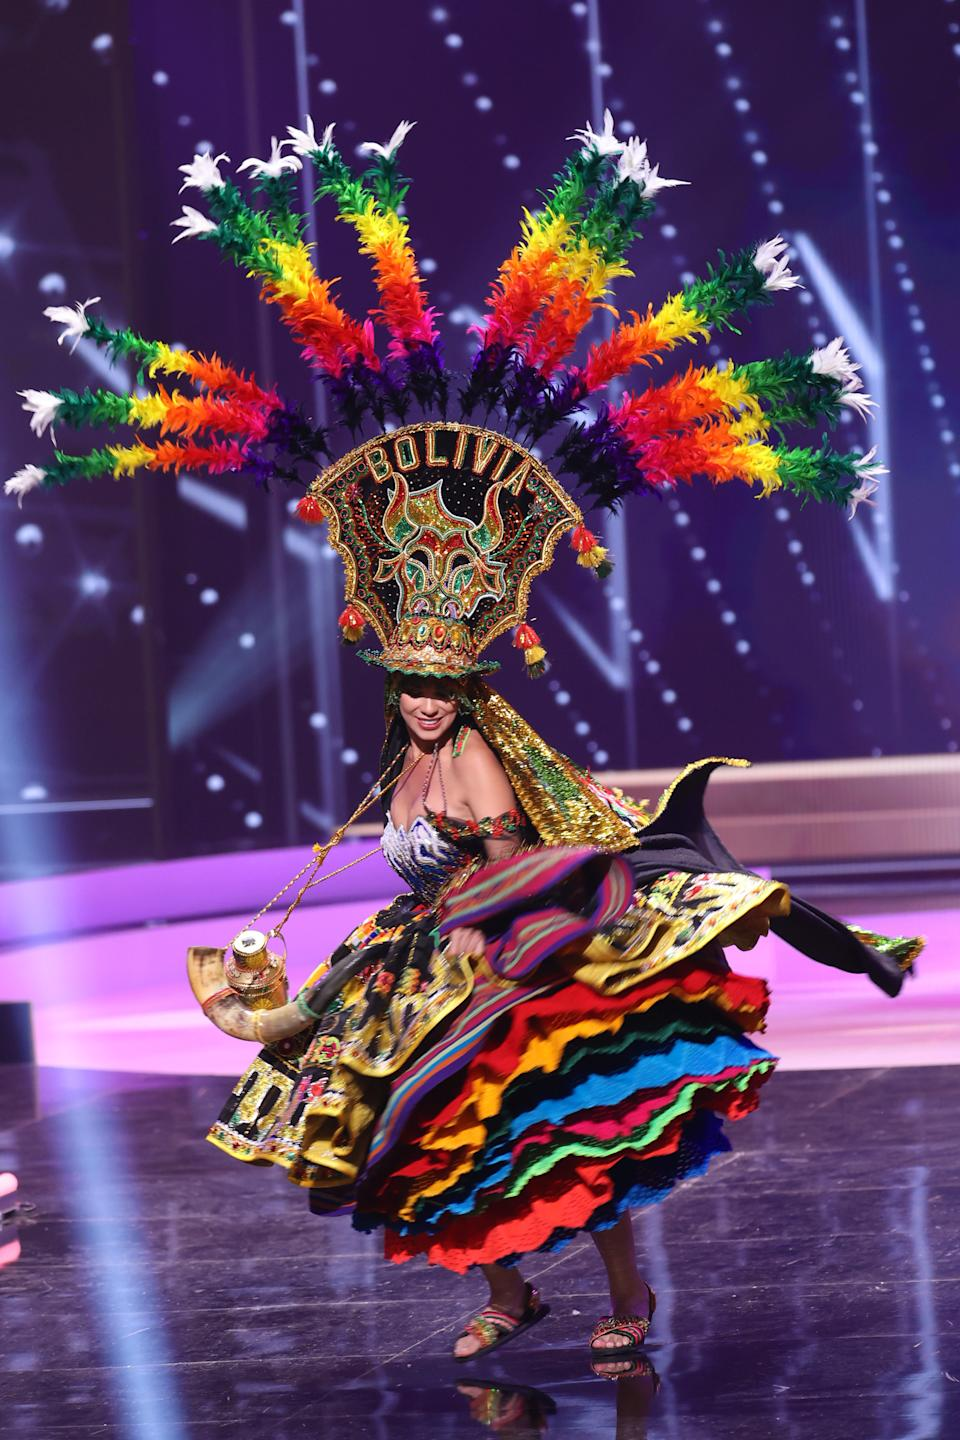 <p>Miss Bolivia Lenka Nemer appears onstage at the Miss Universe 2021 - National Costume Show at Seminole Hard Rock Hotel & Casino on May 13, 2021 in Hollywood, Florida. (Photo by Rodrigo Varela/Getty Images)</p>